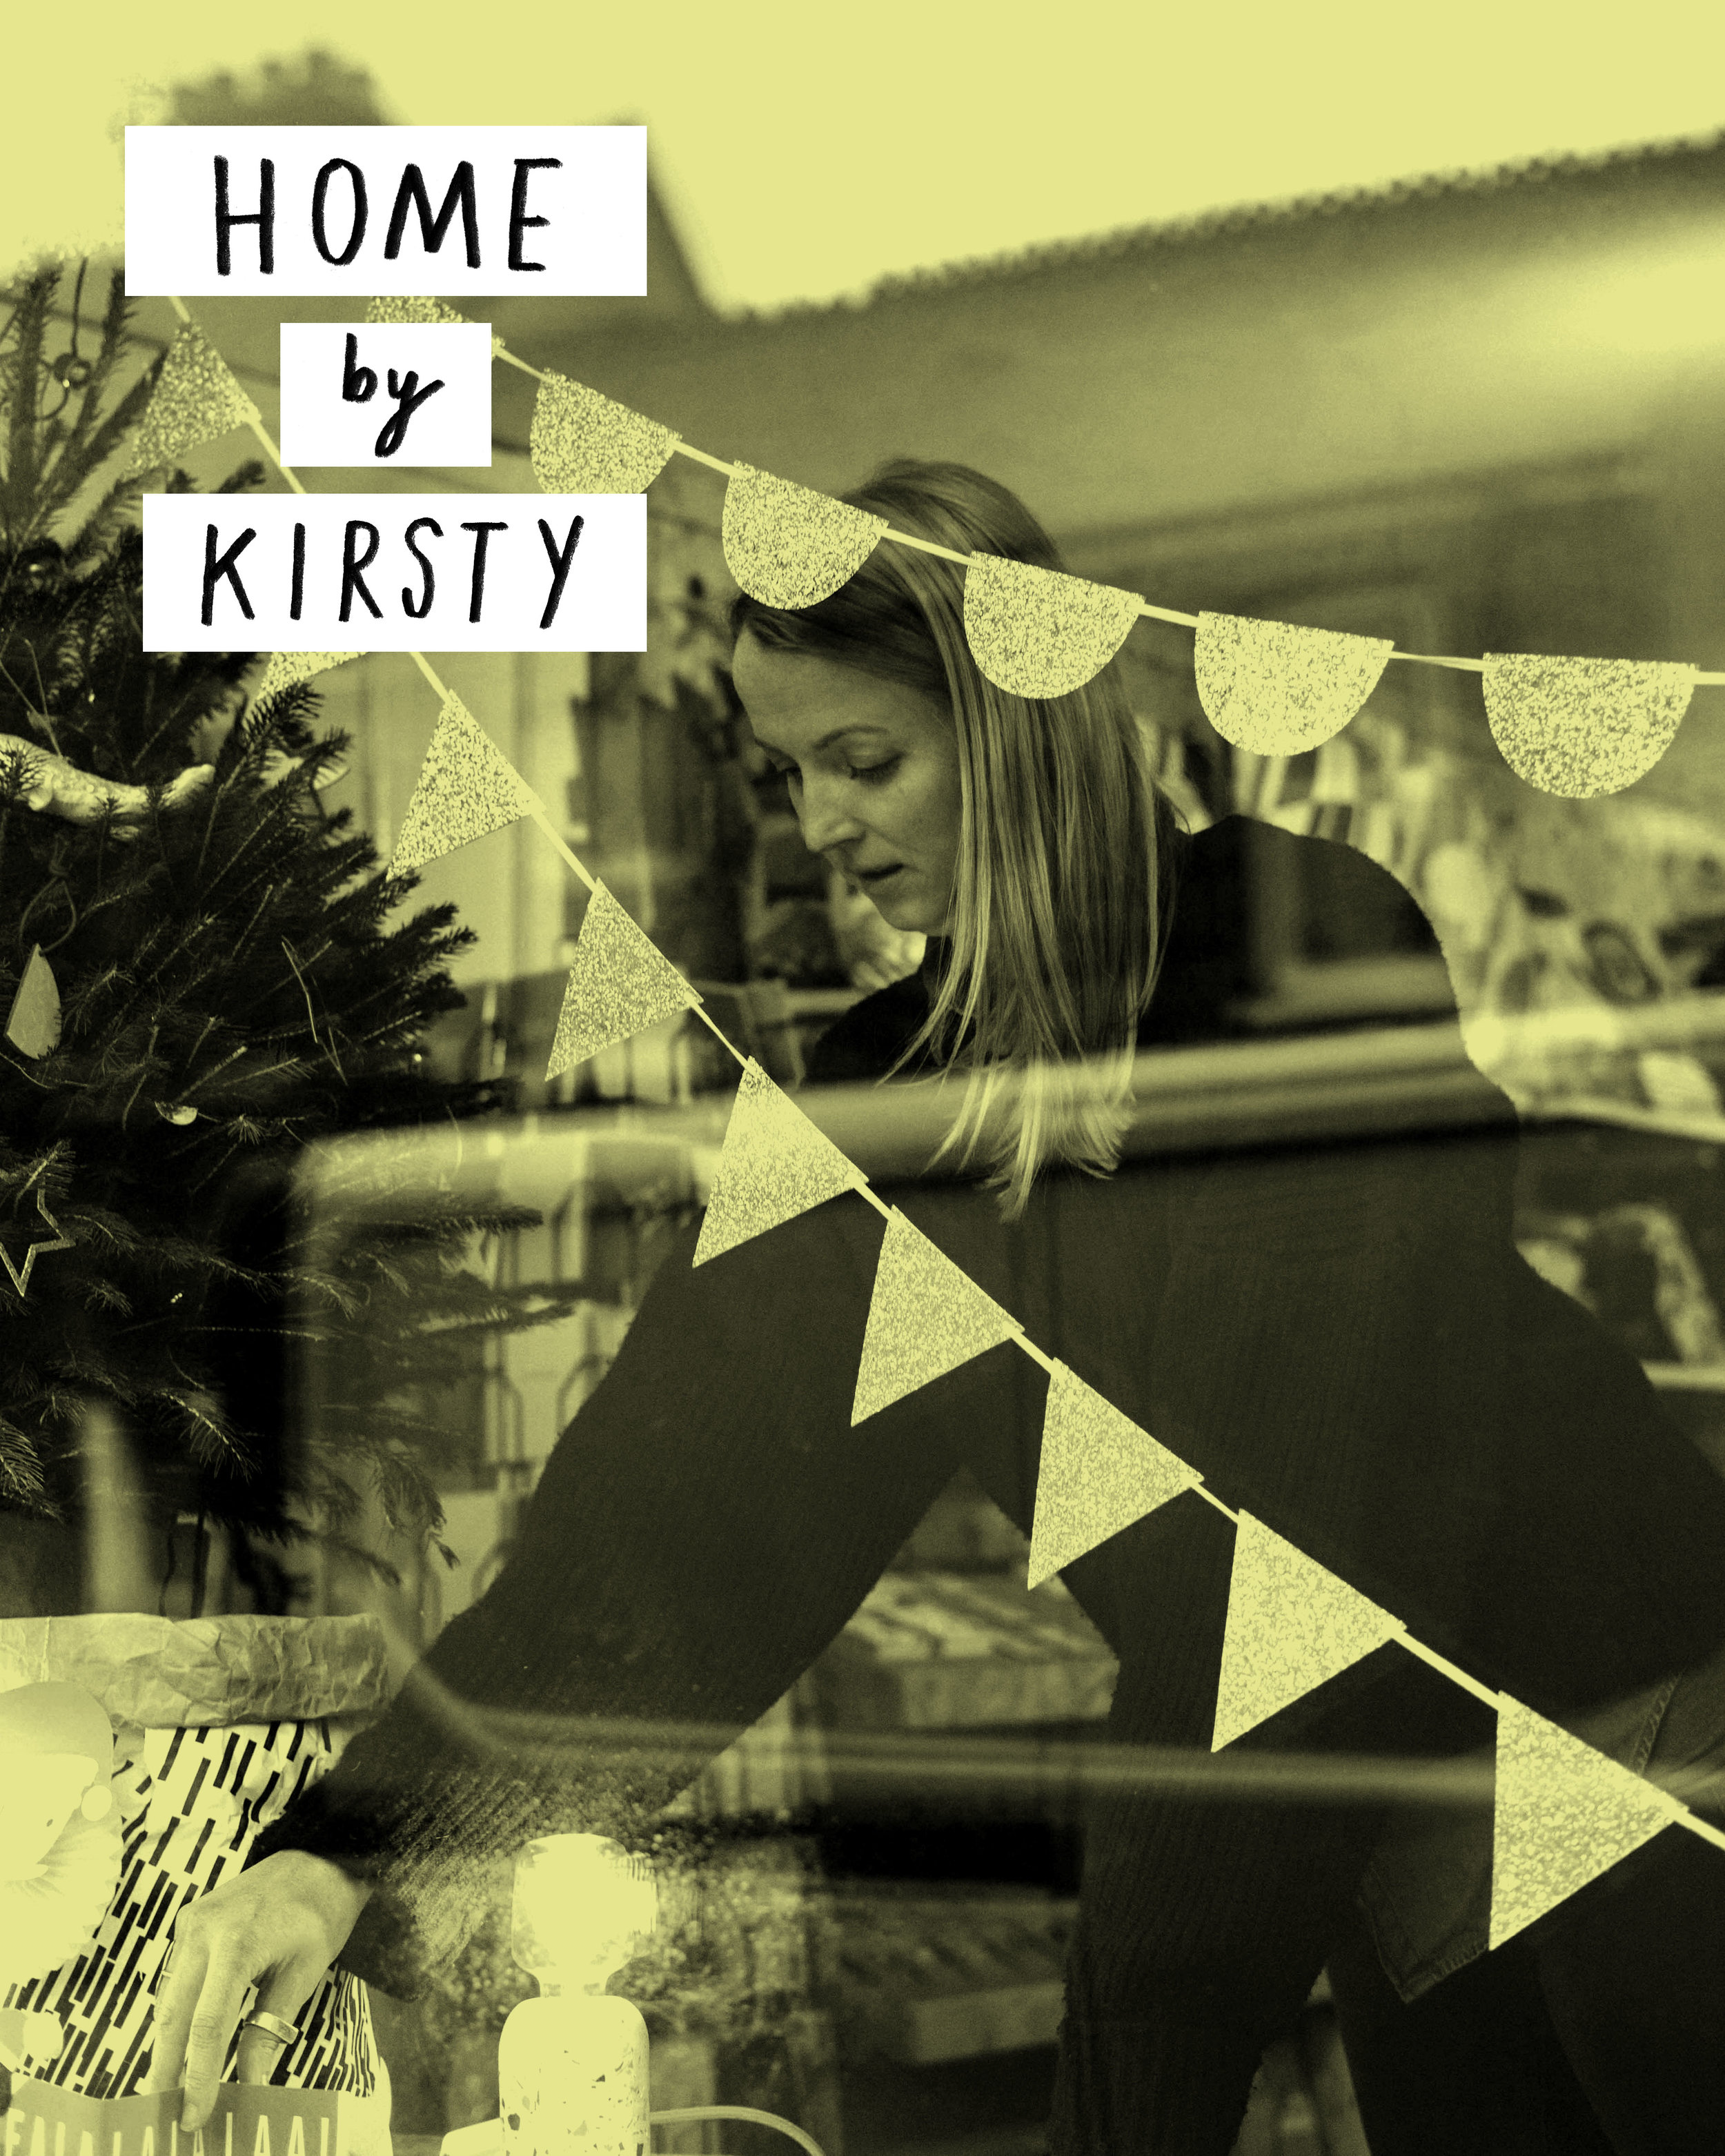 Home By Kirsty Cover Image.jpg